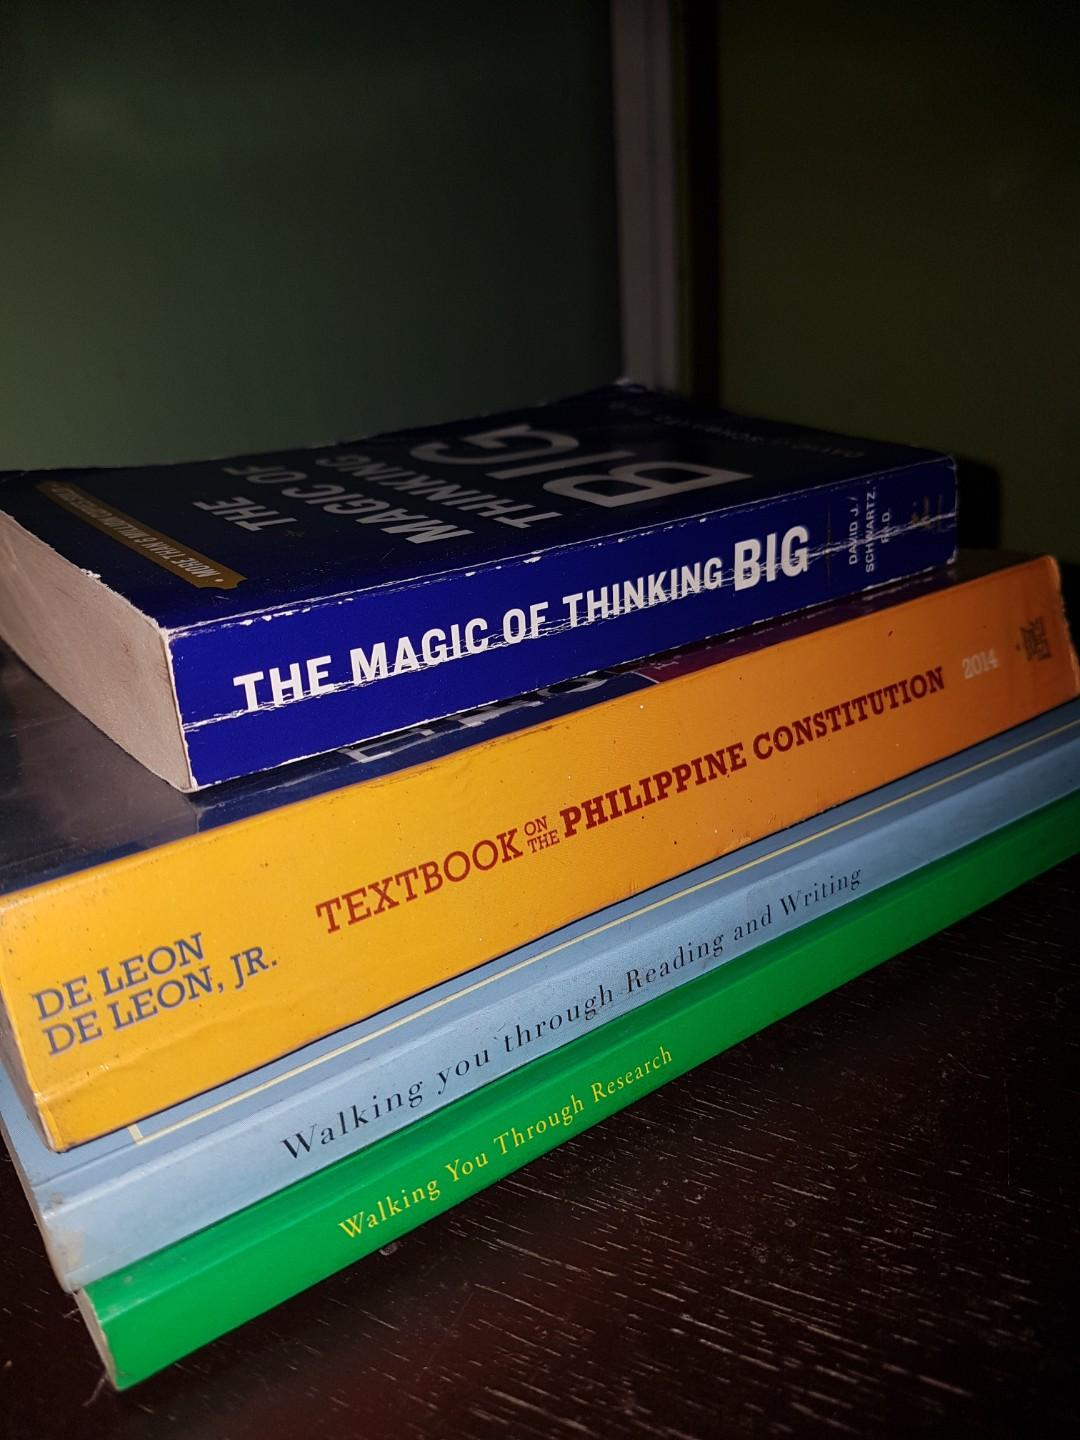 NMAT REVIEWER/thesis research/motivational/philippine constitution books